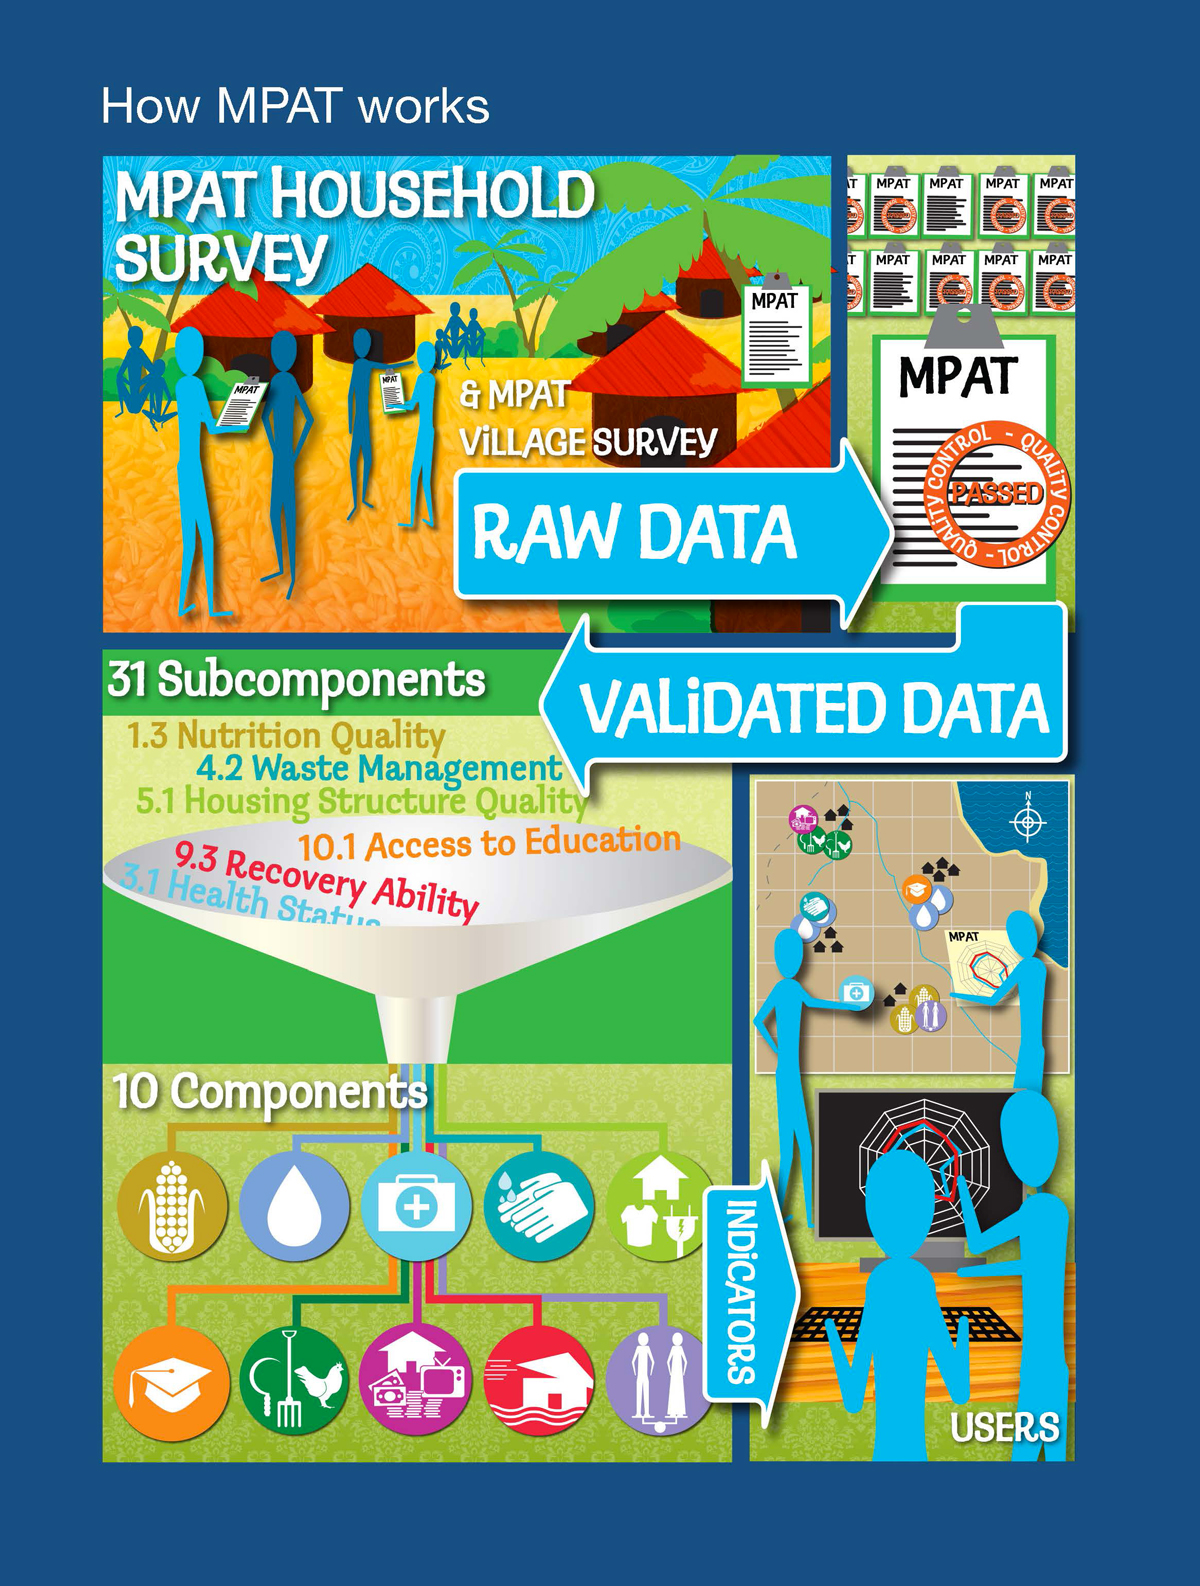 IFAD-MPAT-(2014)-Info-graphic—How-does-MPAT-work